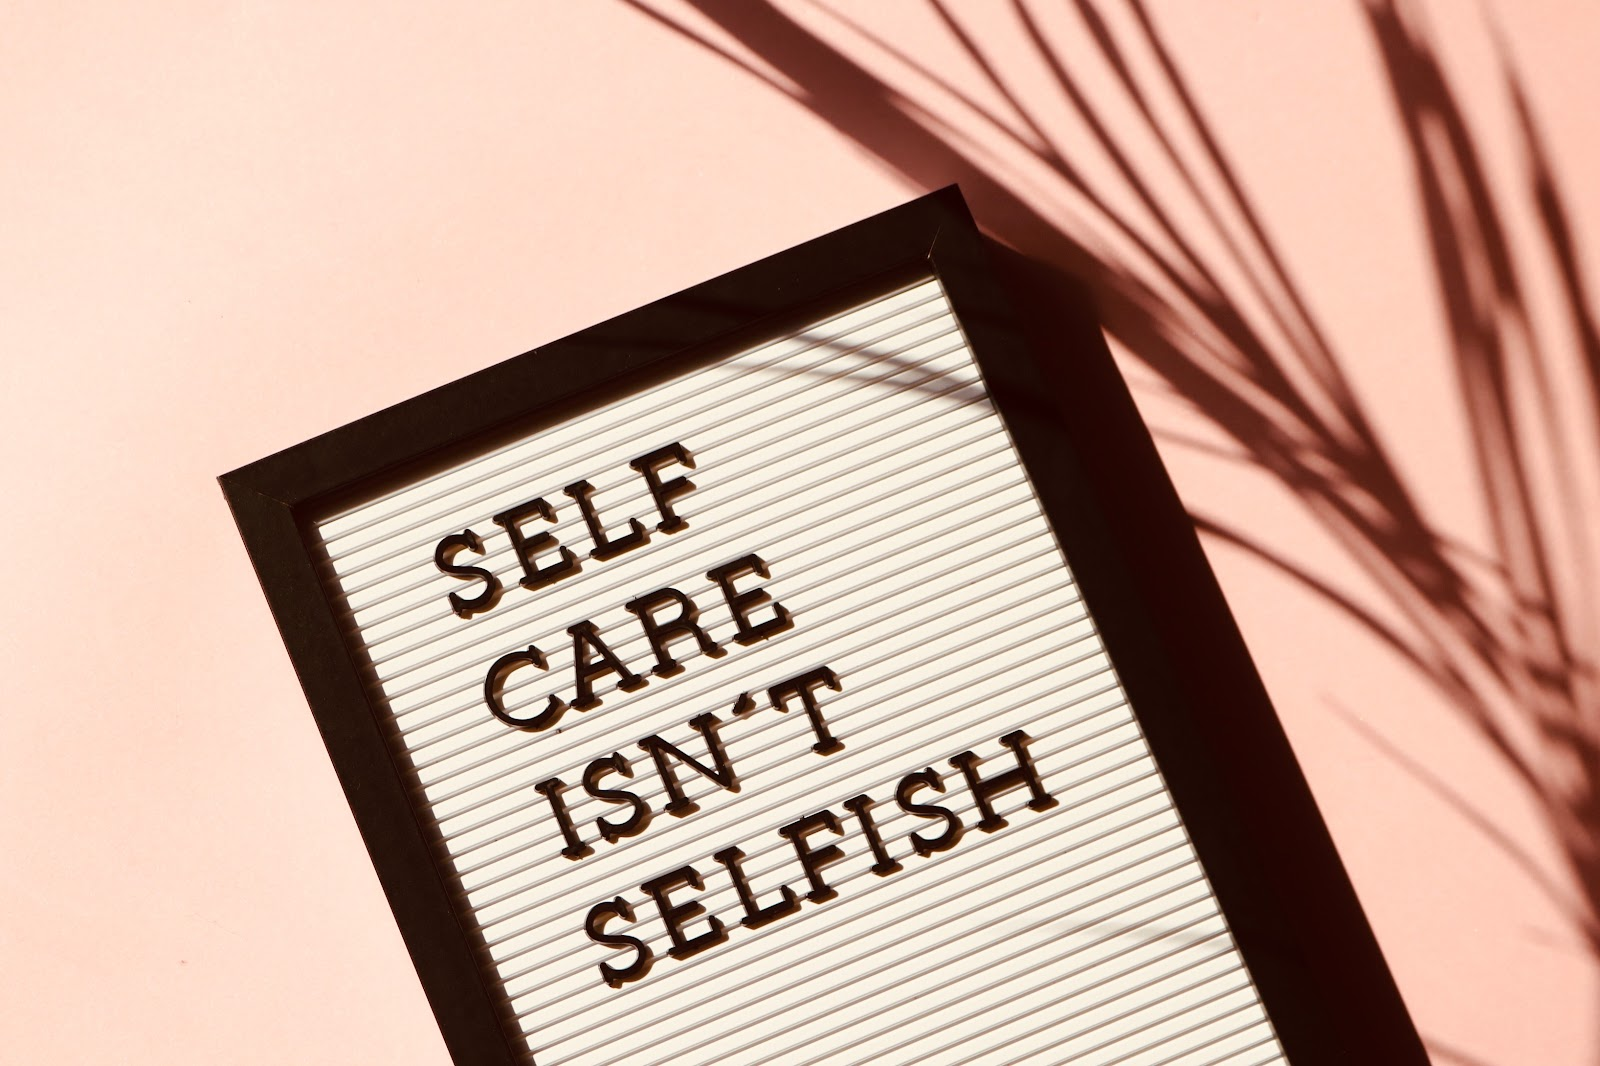 There's a lot of misconceptions when it comes to self-care, one of which being that it's selfish.